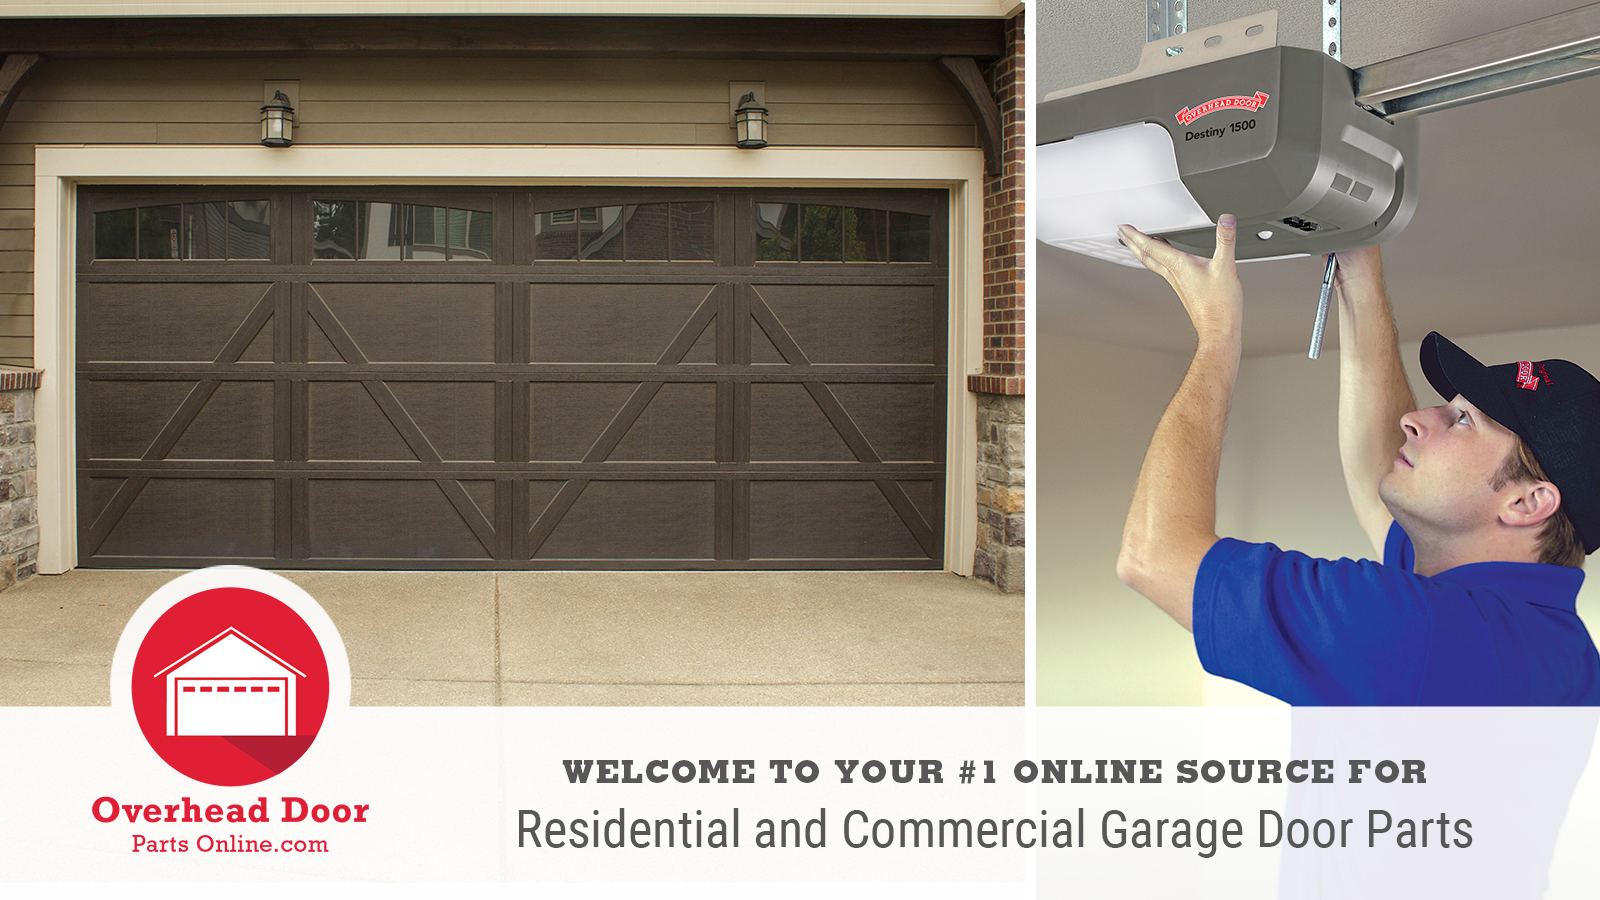 Welcome to your #1 online source for residential and commercial garage door parts